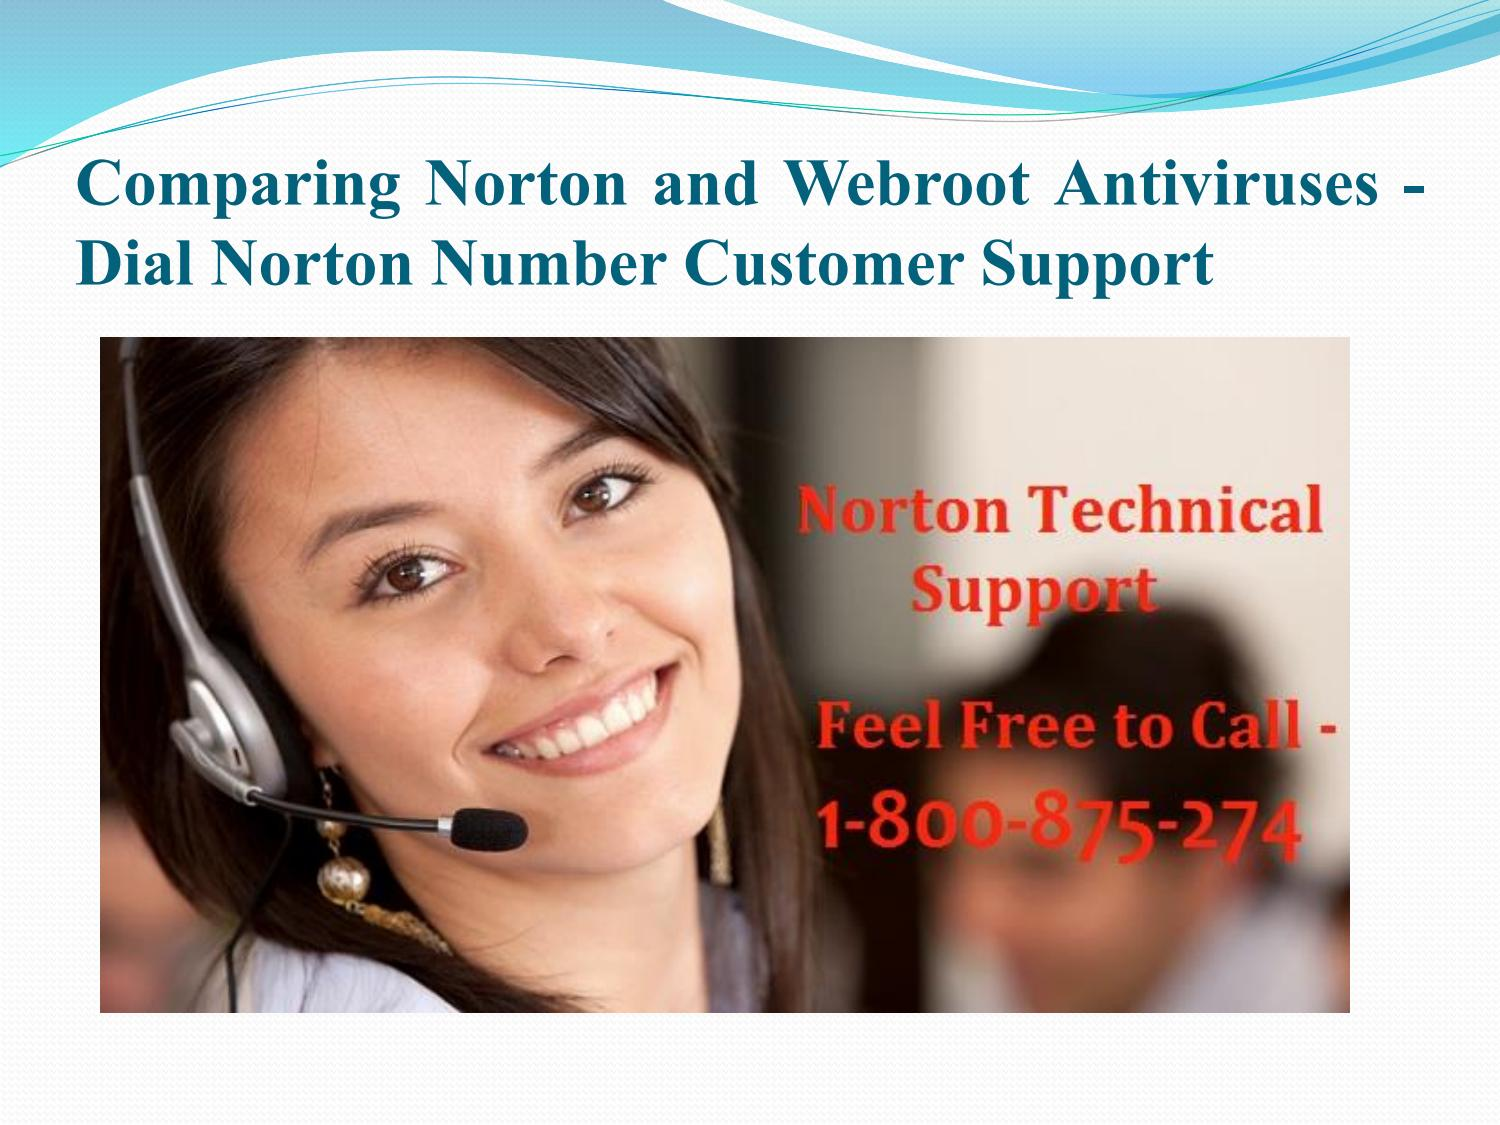 Comparing norton and webroot antiviruses by Isabel Grasby